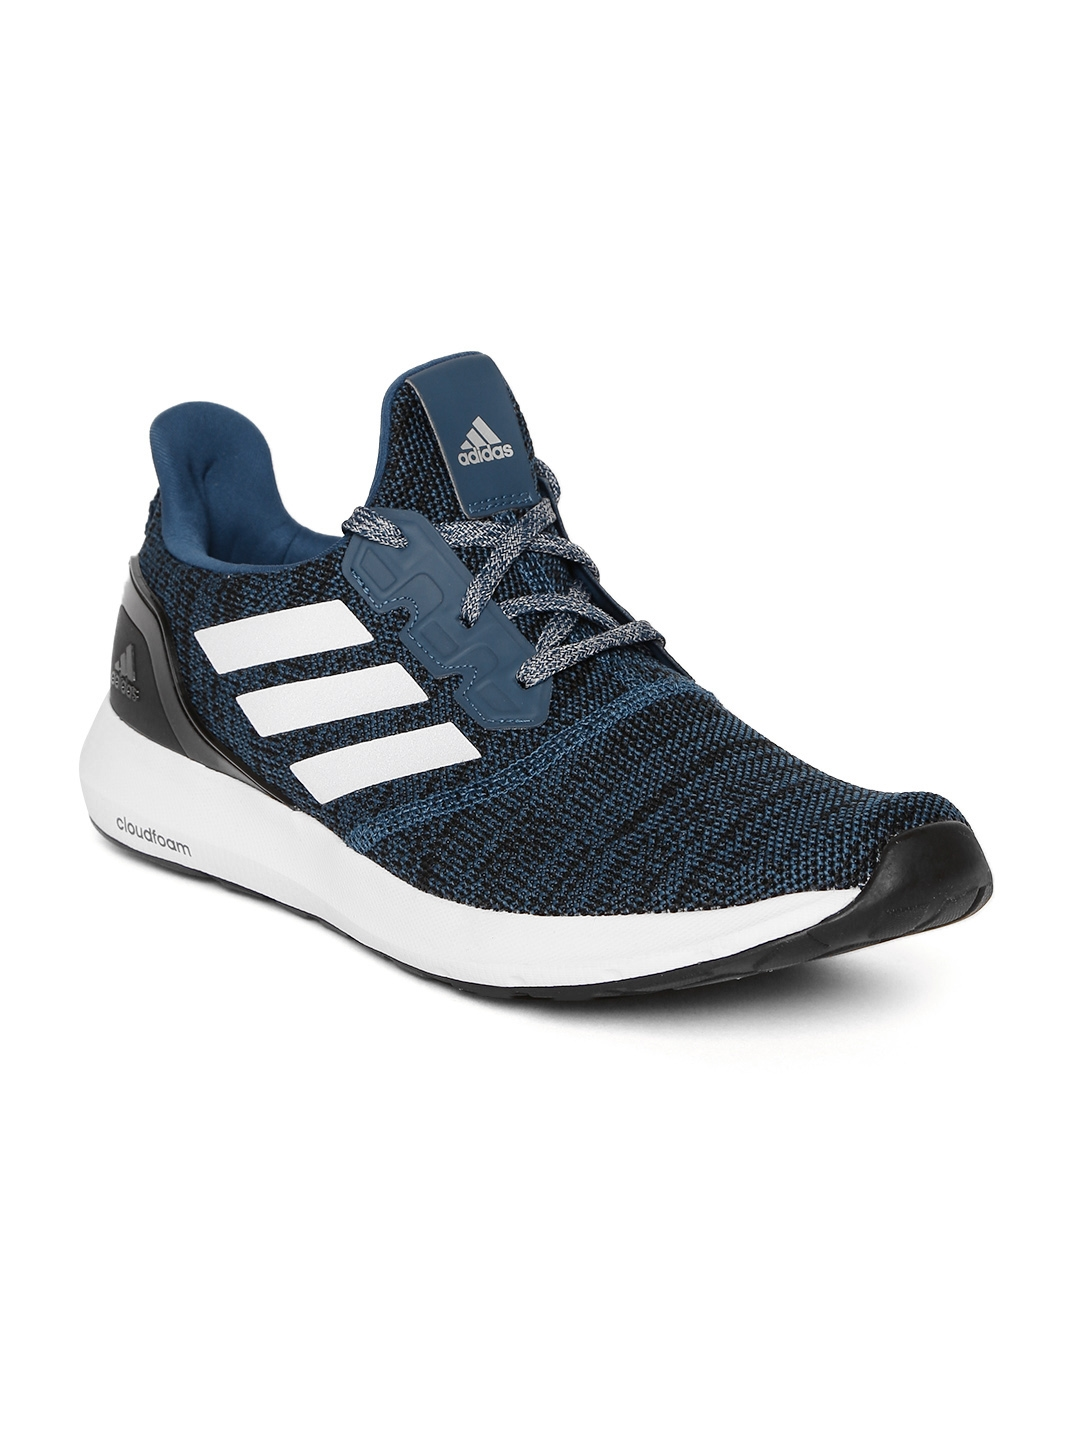 adidas shoes high tops blue and black. adidas men blue \u0026 black zeta 1.0 mid-top running shoes high tops and d